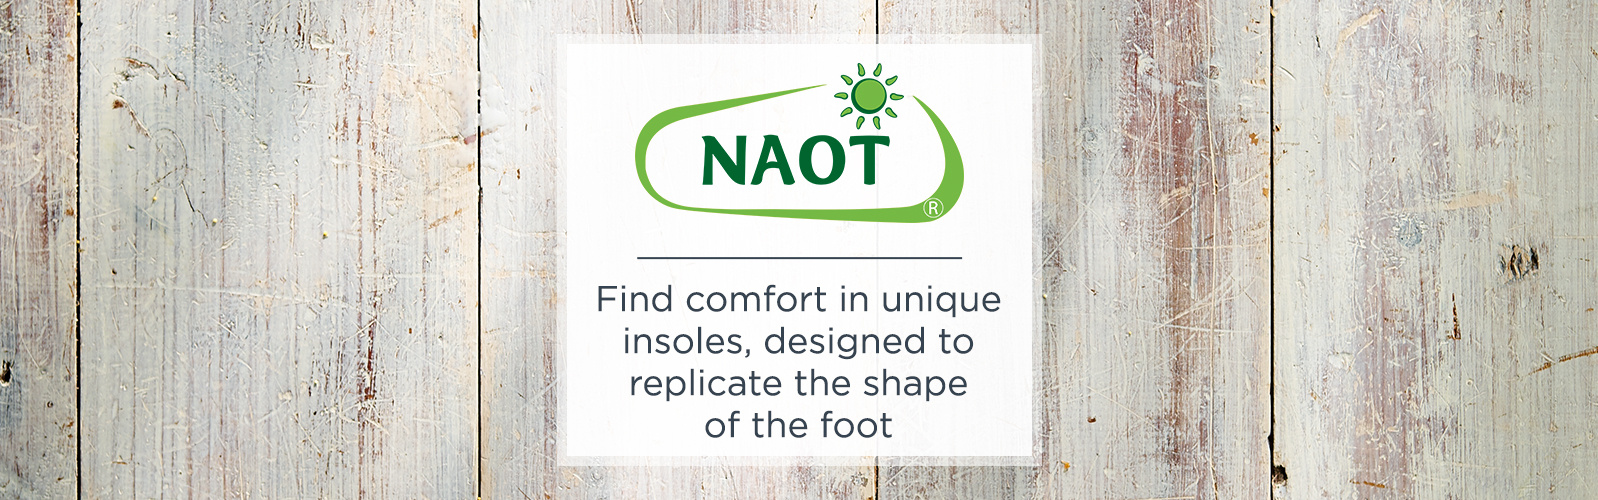 NAOT Find comfort in unique insoles, designed to replicate the shape of the foot